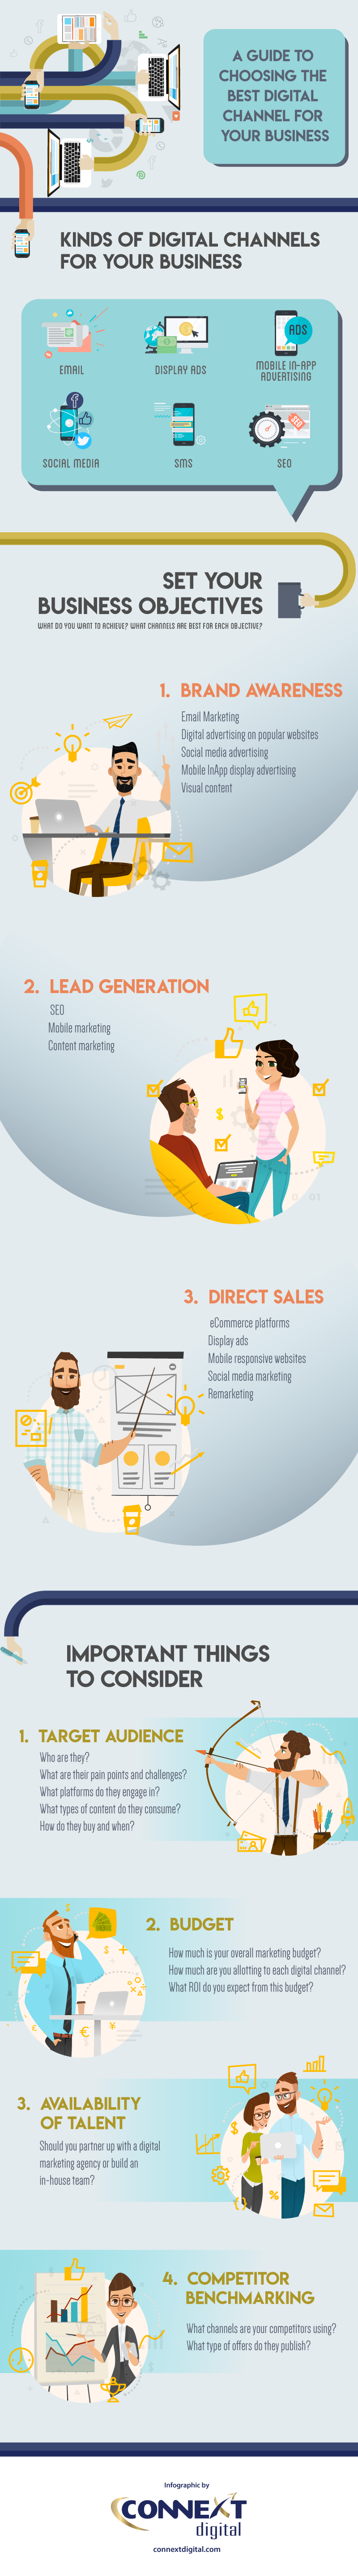 A Guide to Choosing the Best Digital Channel for Your Business Infographic